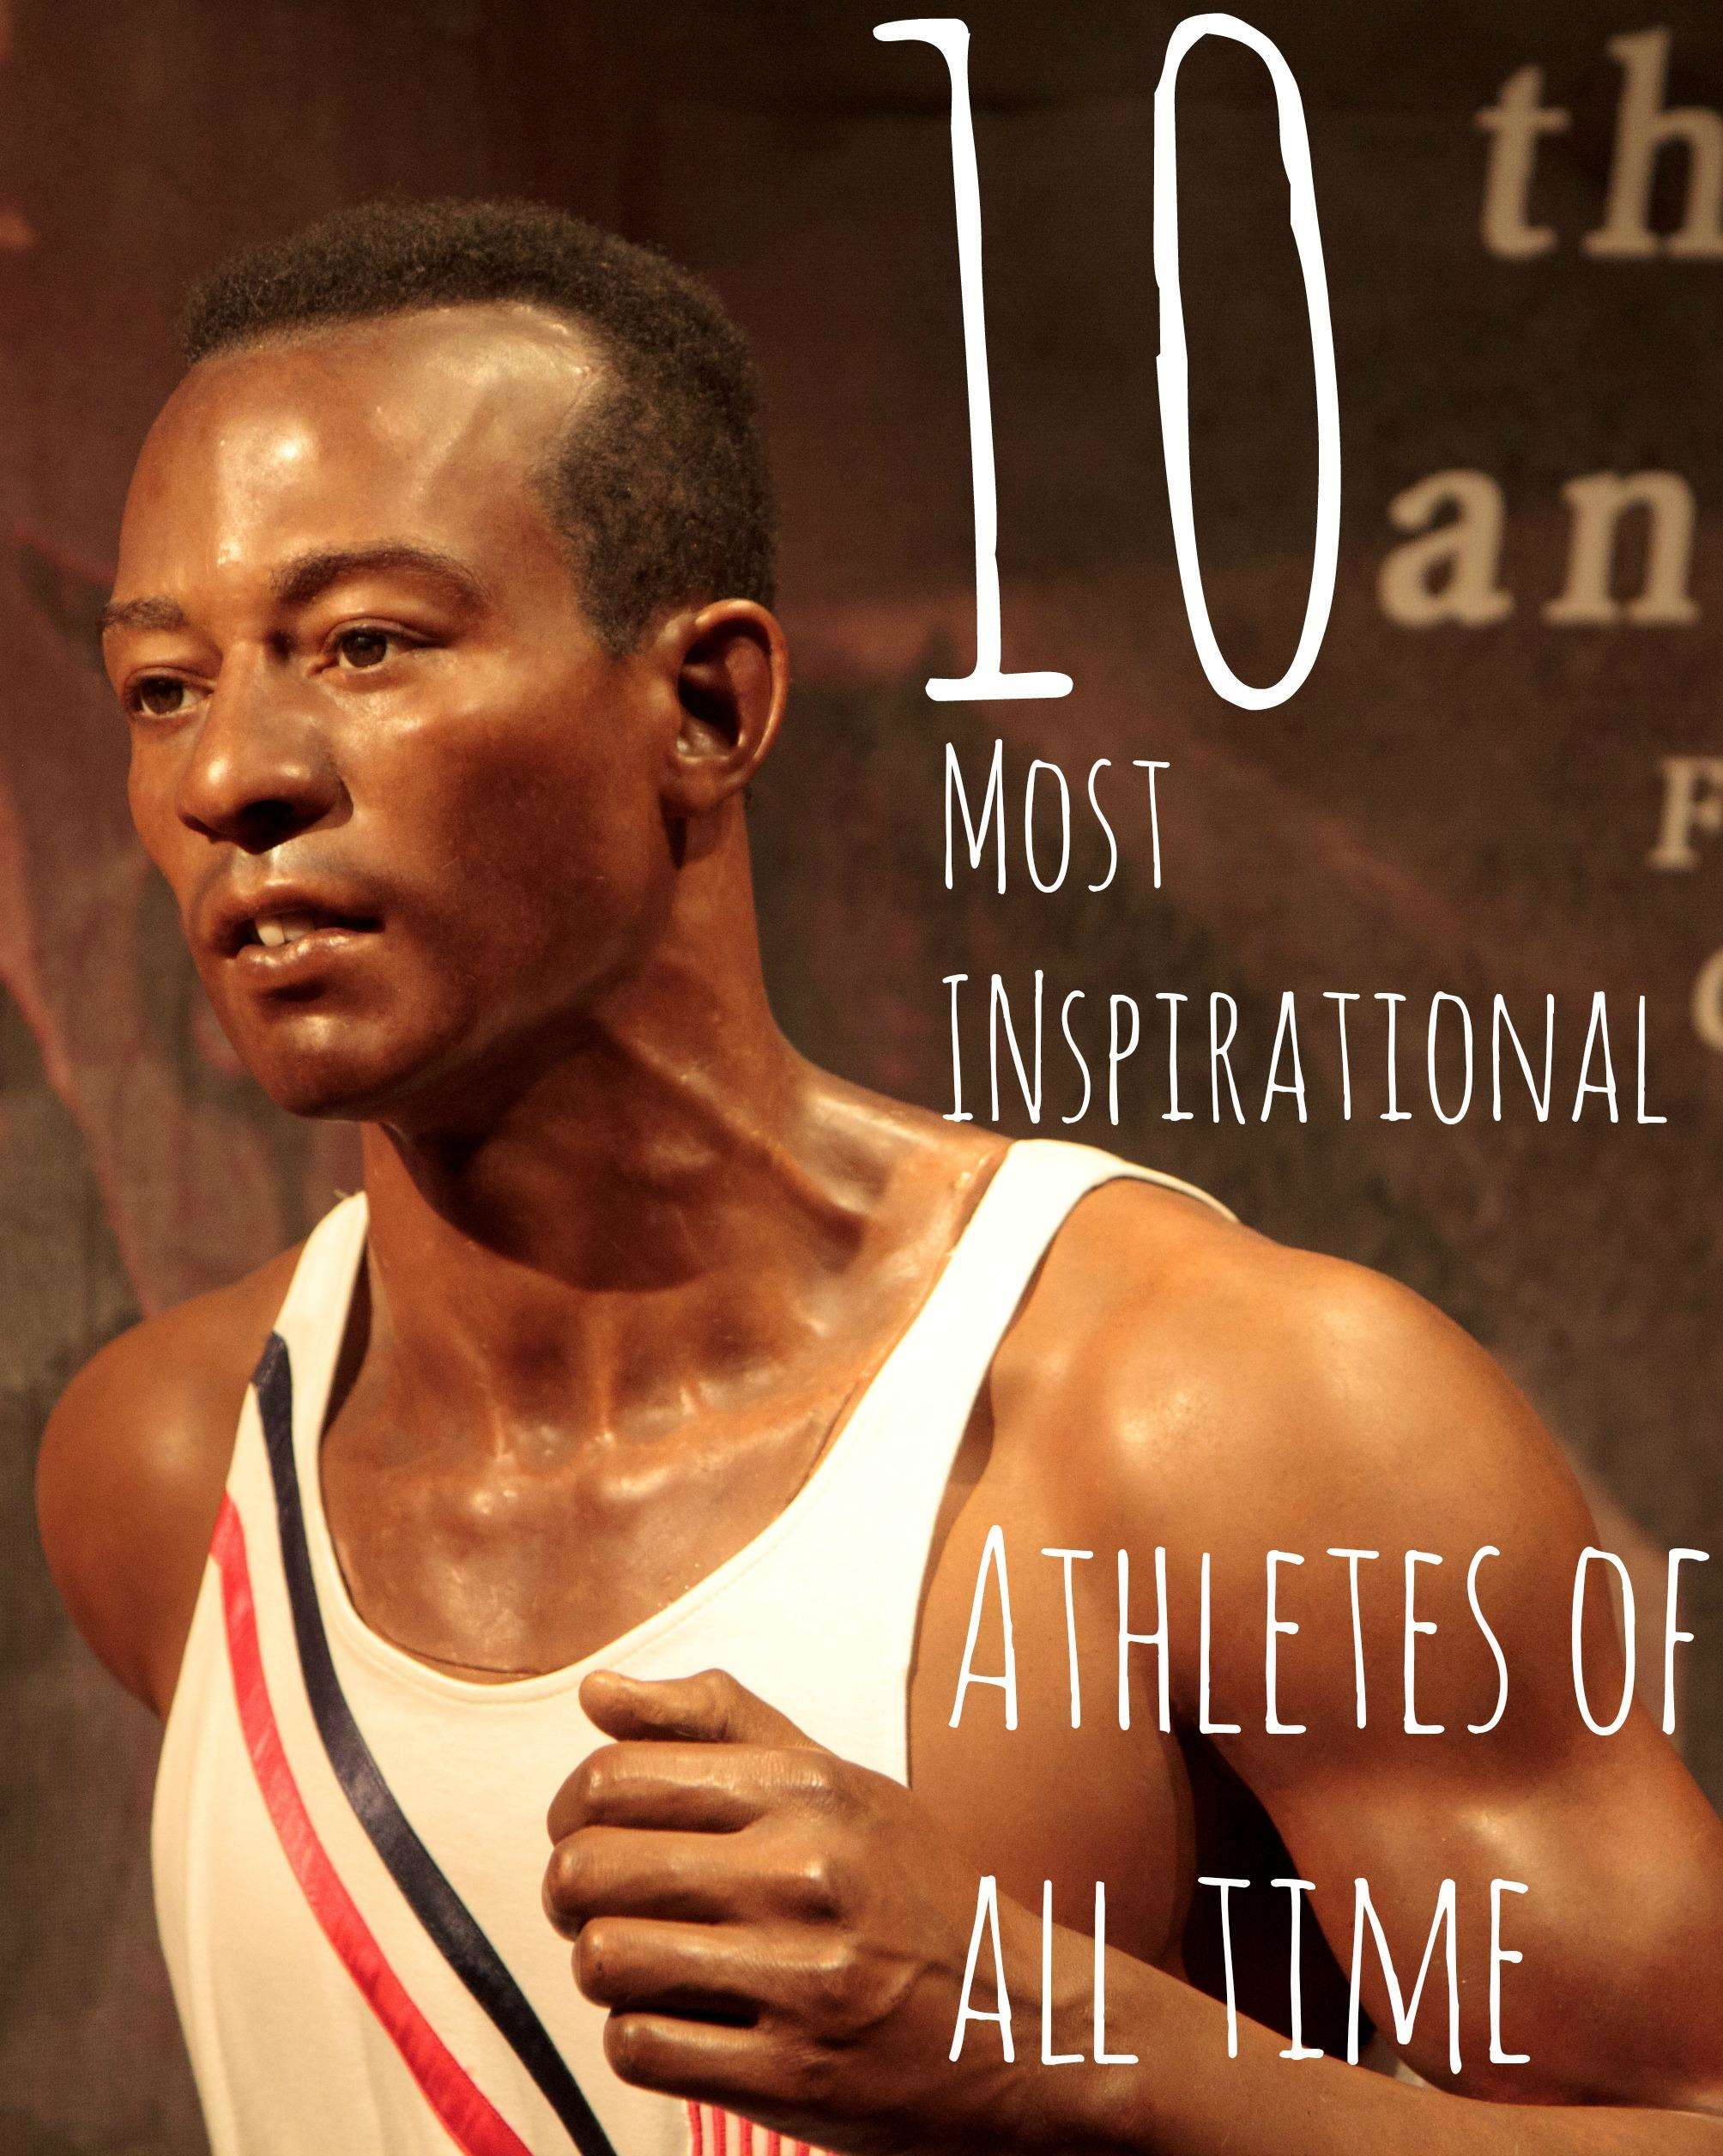 10 Most Inspirational Athletes of All Time, Jesse%, new-dad%